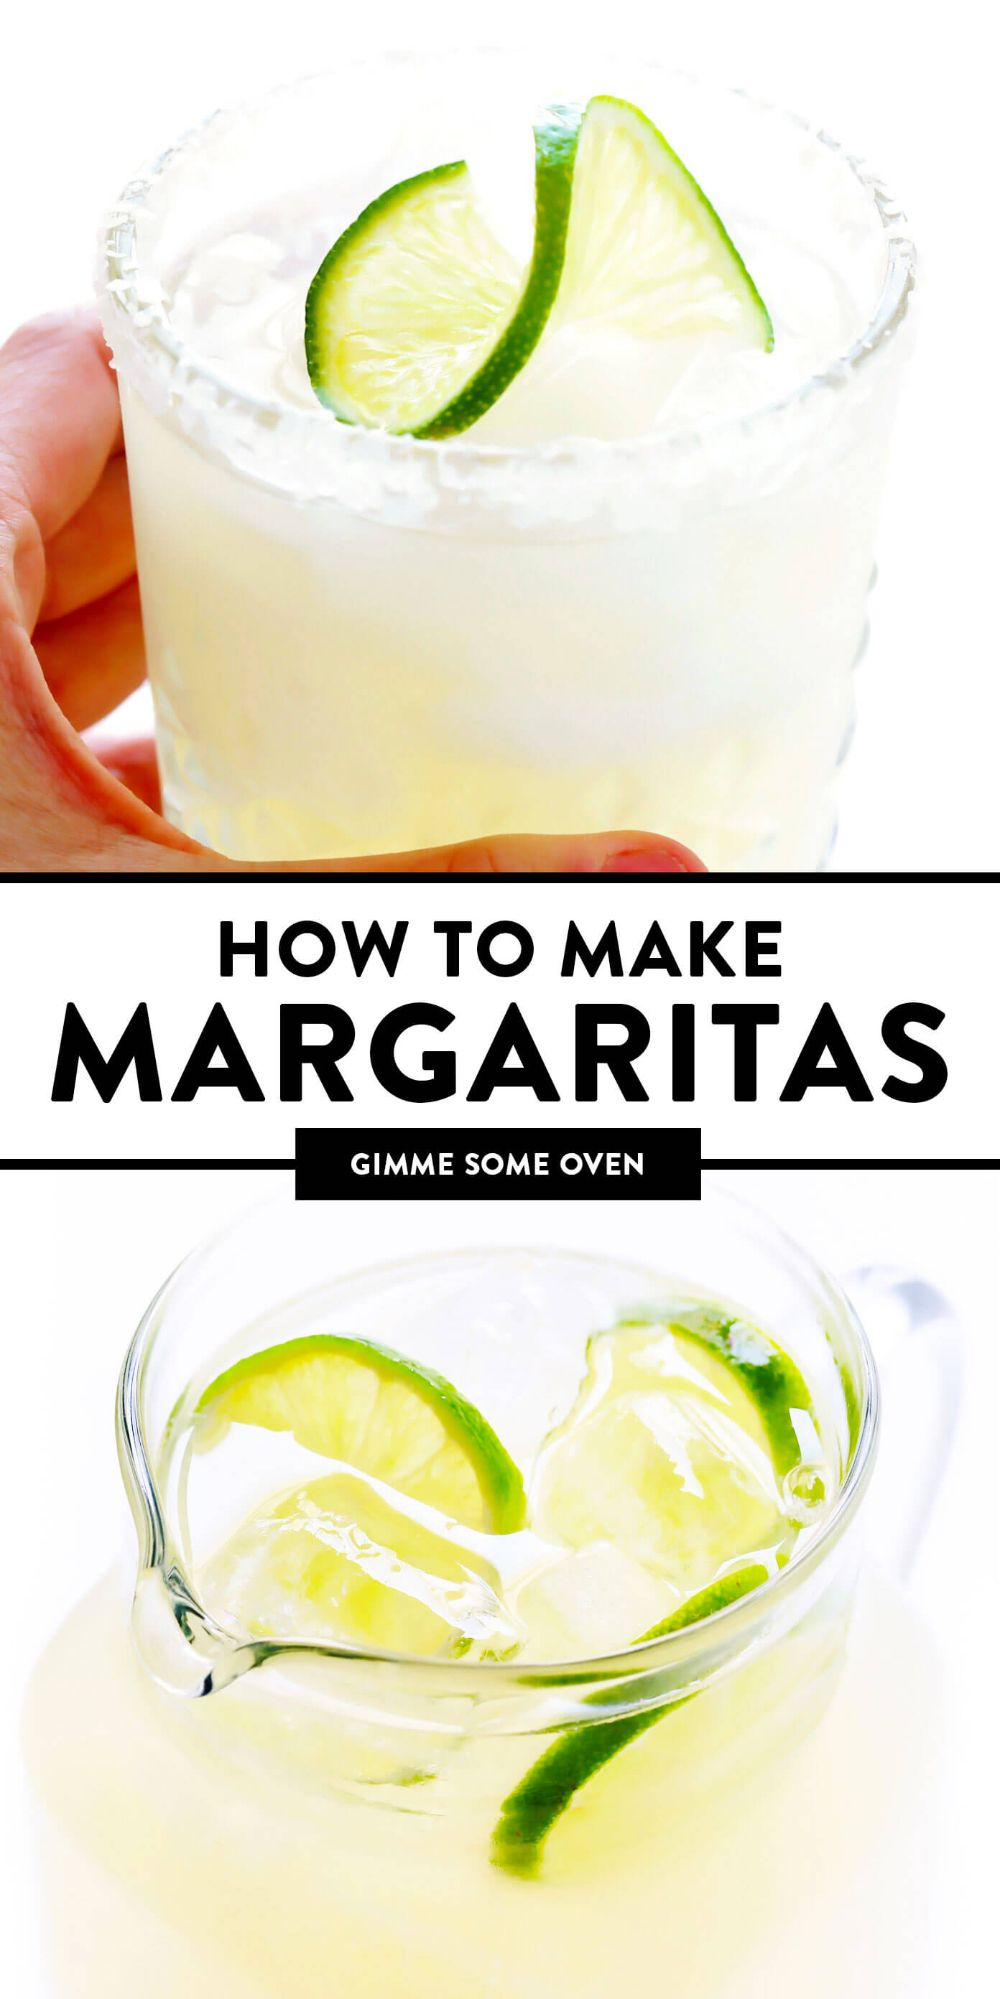 Learn how to make a margarita with this classic 3-ingredient margarita recipe! Plus, tips for how to make a margarita for an individual serving, or pitcher margaritas for a crowd. | gimmesomeoven.com #margarita #cocktail #drink #tequila #mexican #cincodemayo